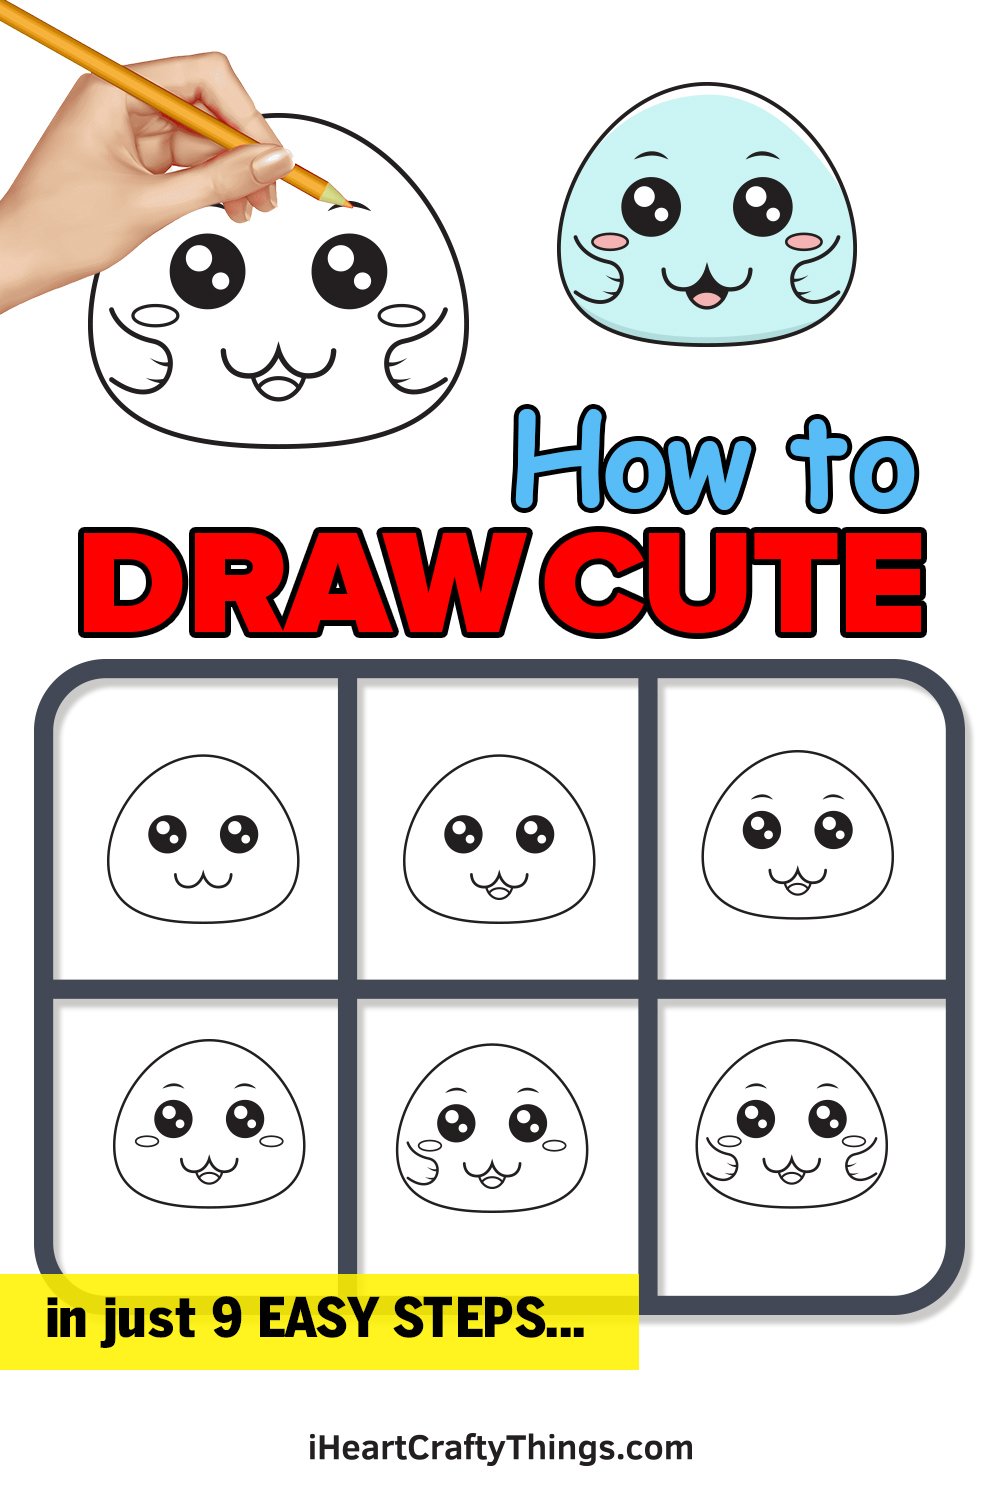 how to draw cute in 9 easy steps